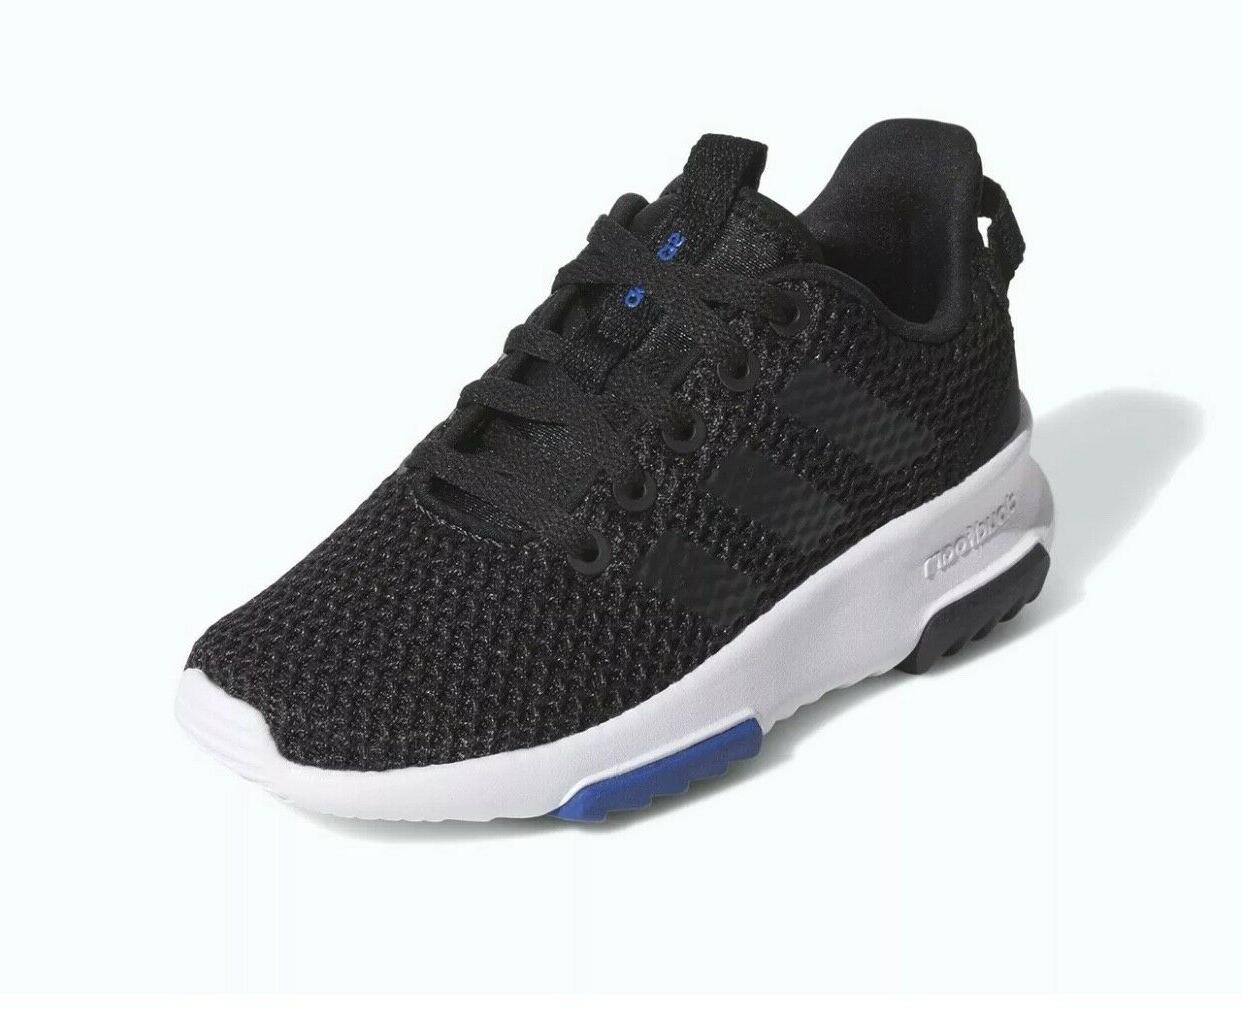 New CF TR Running Shoes Multi-Size